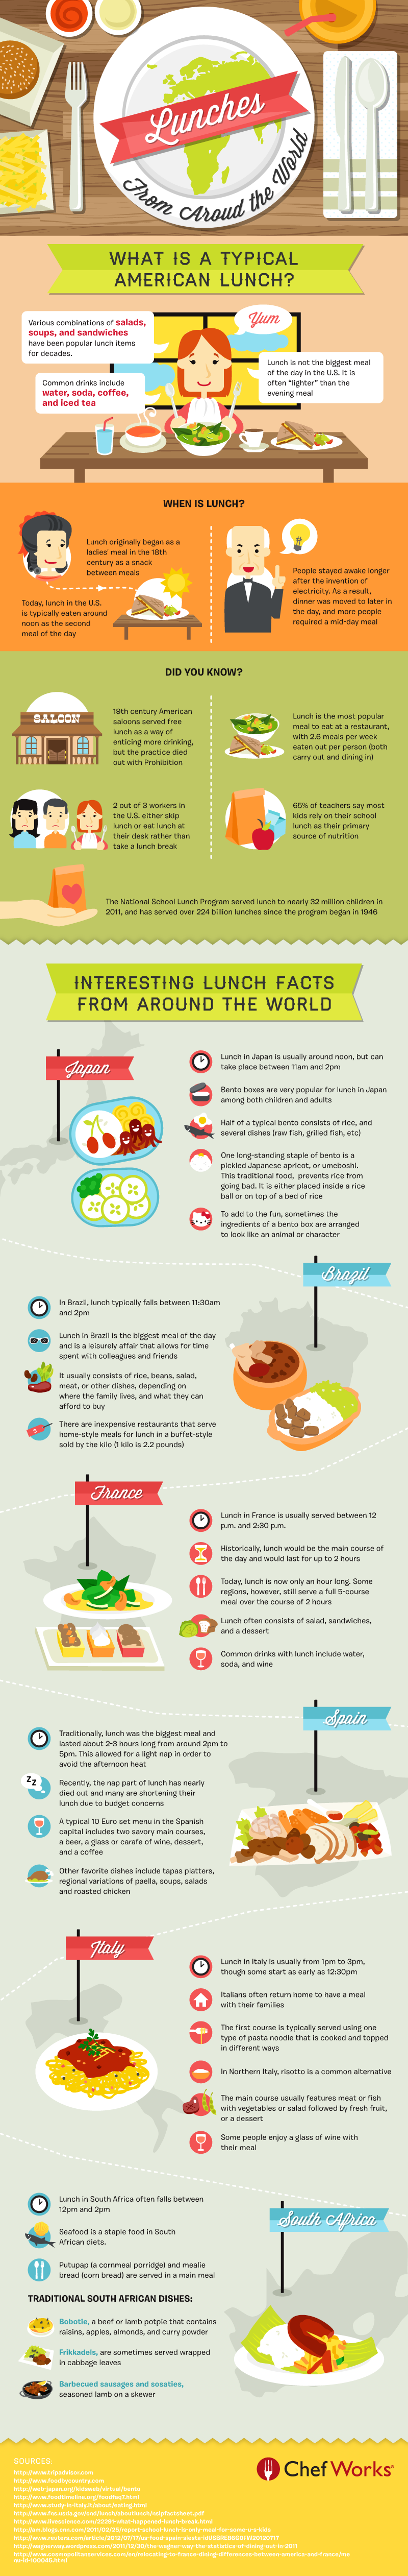 Lunches From Around The World Infographic